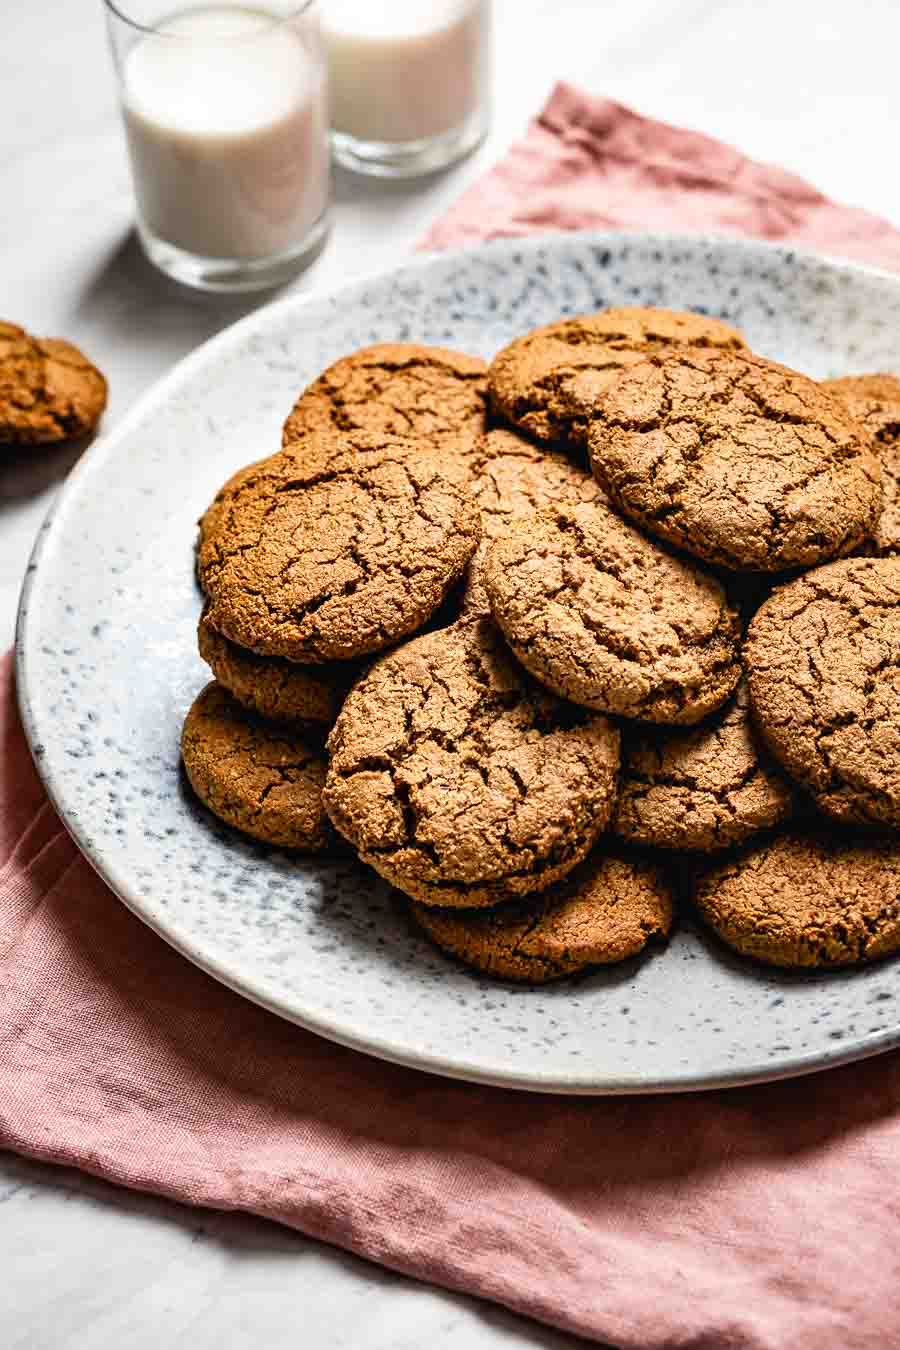 Gingerbread Cookies with almond flour